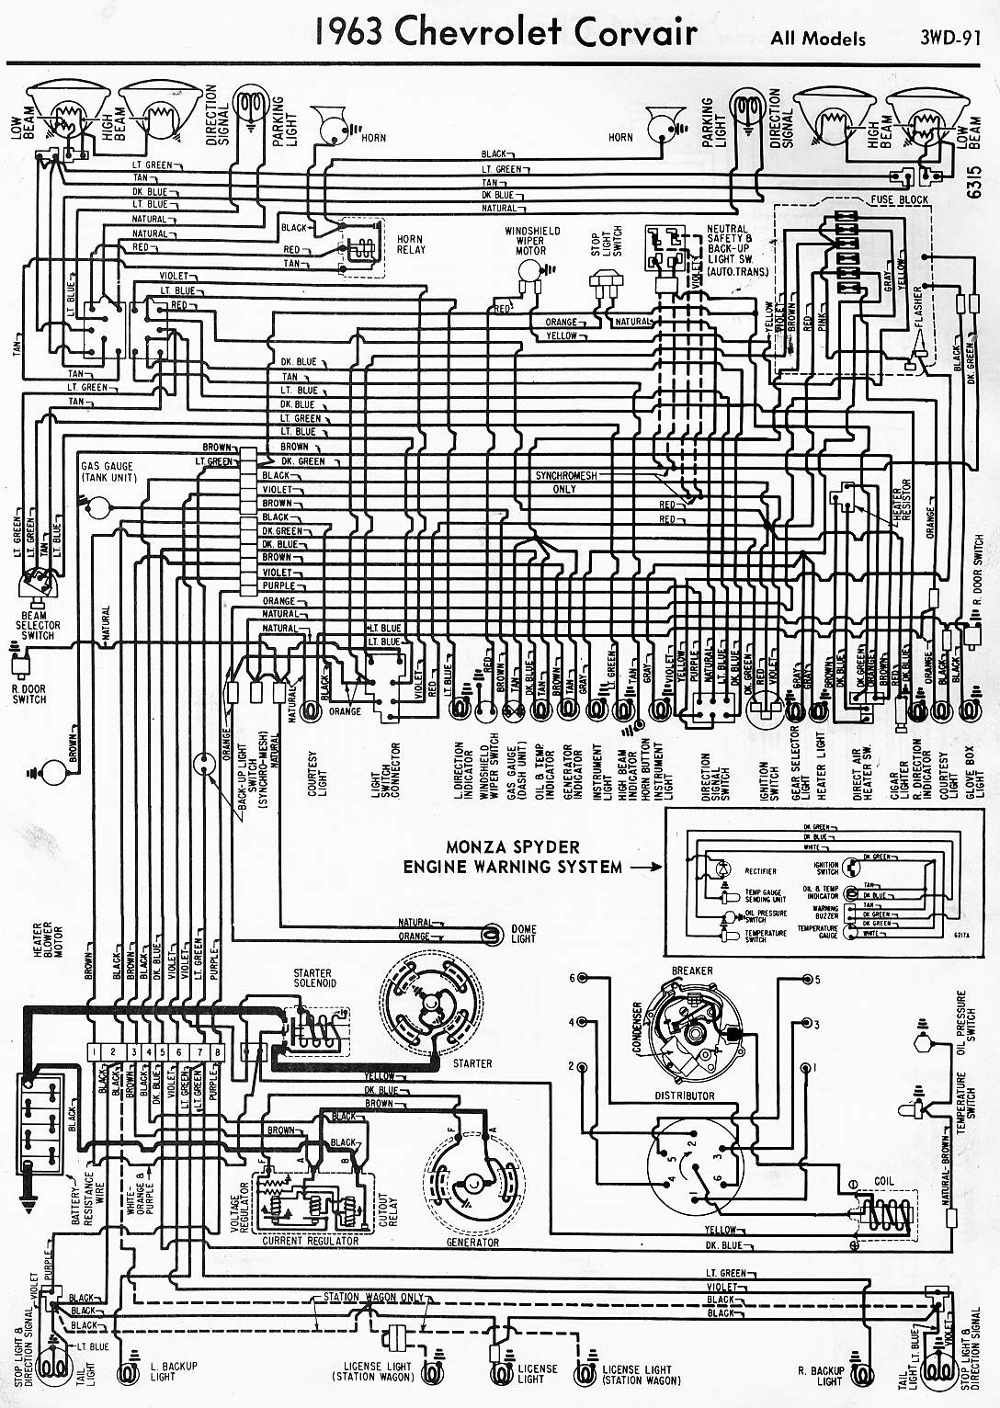 63 Corvair Fuse Box Free Download Wiring Diagrams Diagram On 1966 Chevy Truck Panel For U Boat